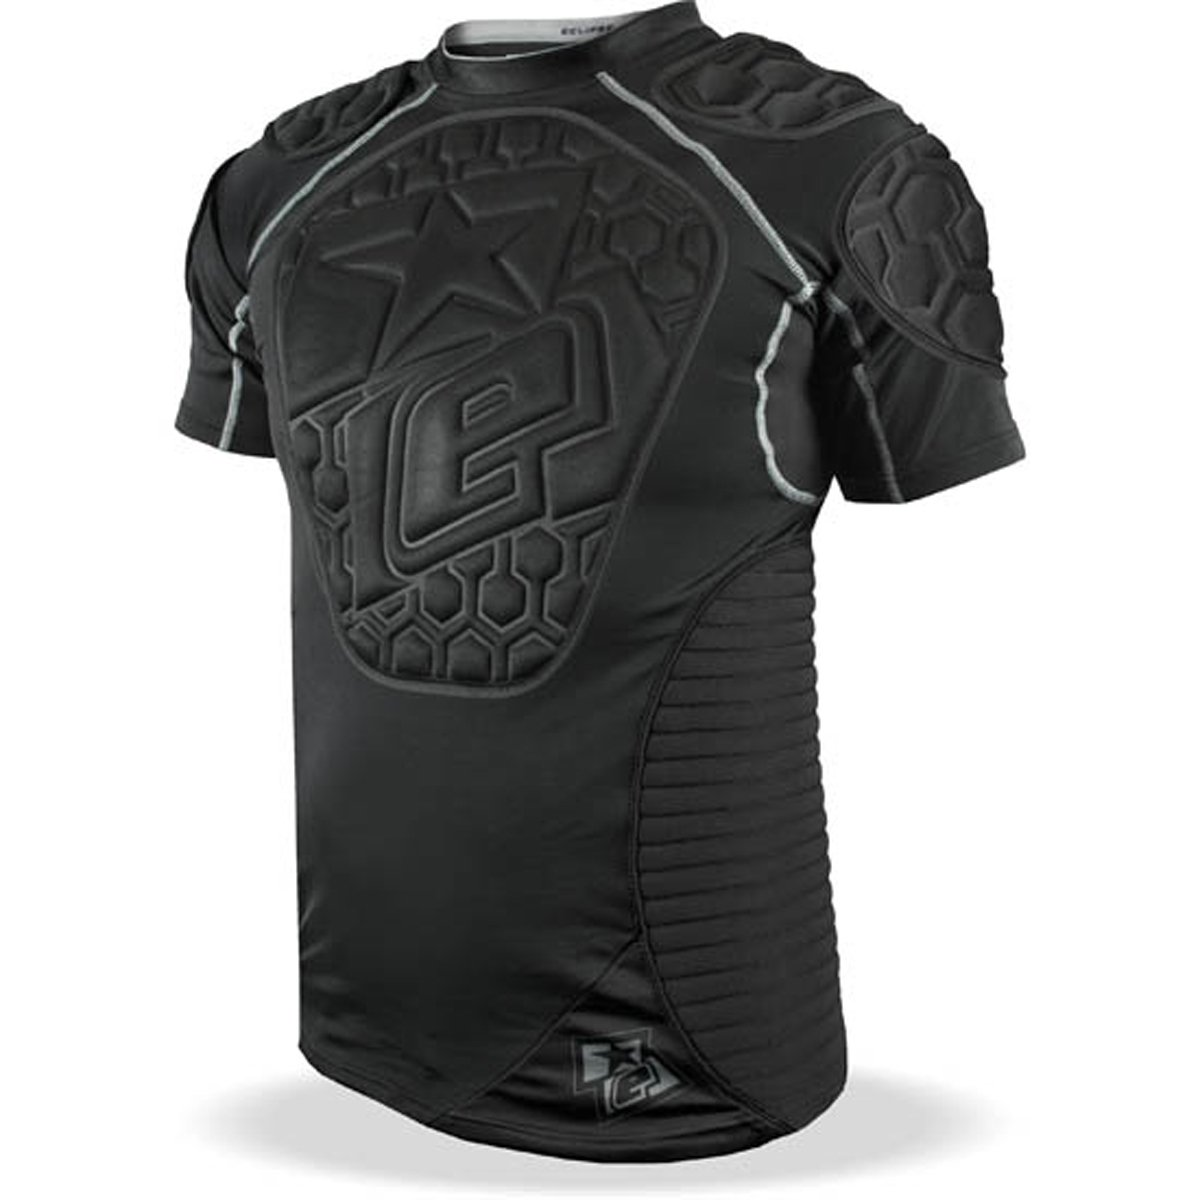 Planet Eclipse Paintball Overload Jersey Gen2 Chest Protector - Small by Planet Eclipse